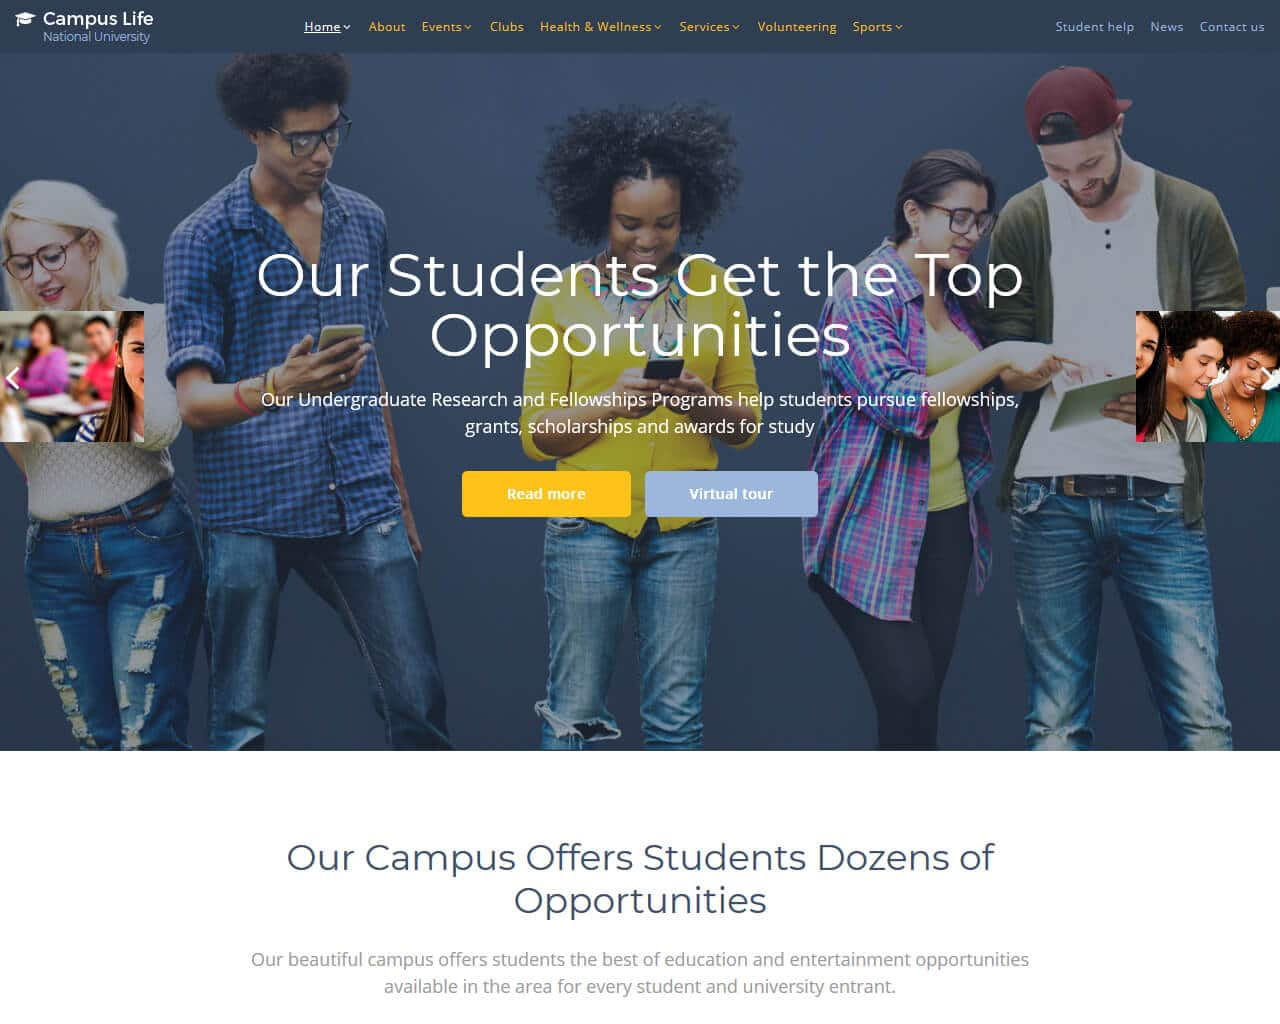 Campus Life Website Template